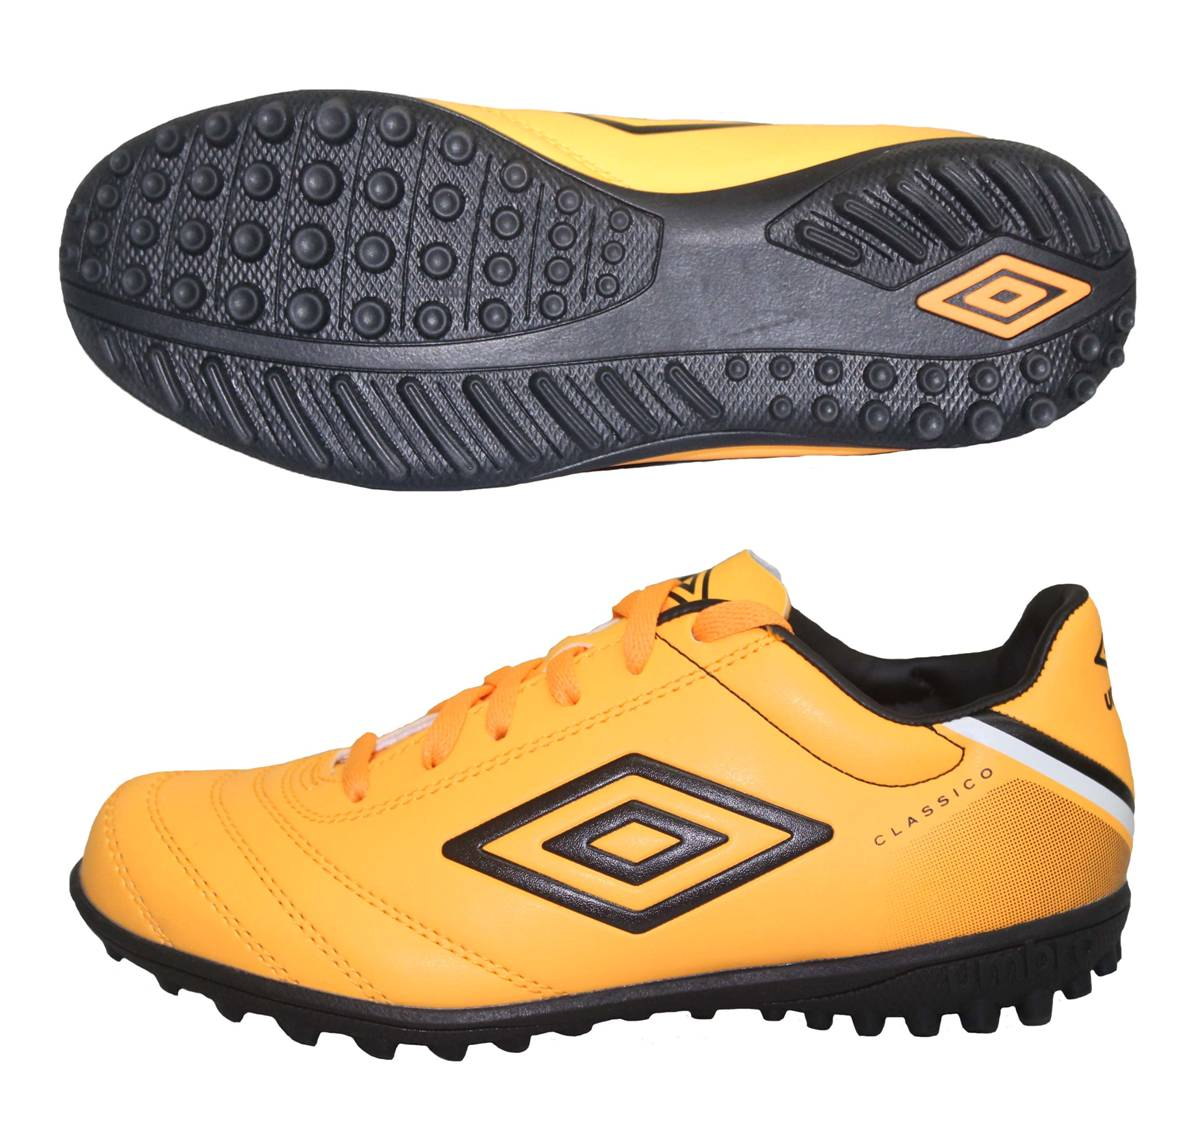 Umbro Classico V Turf Football Boots | Sports